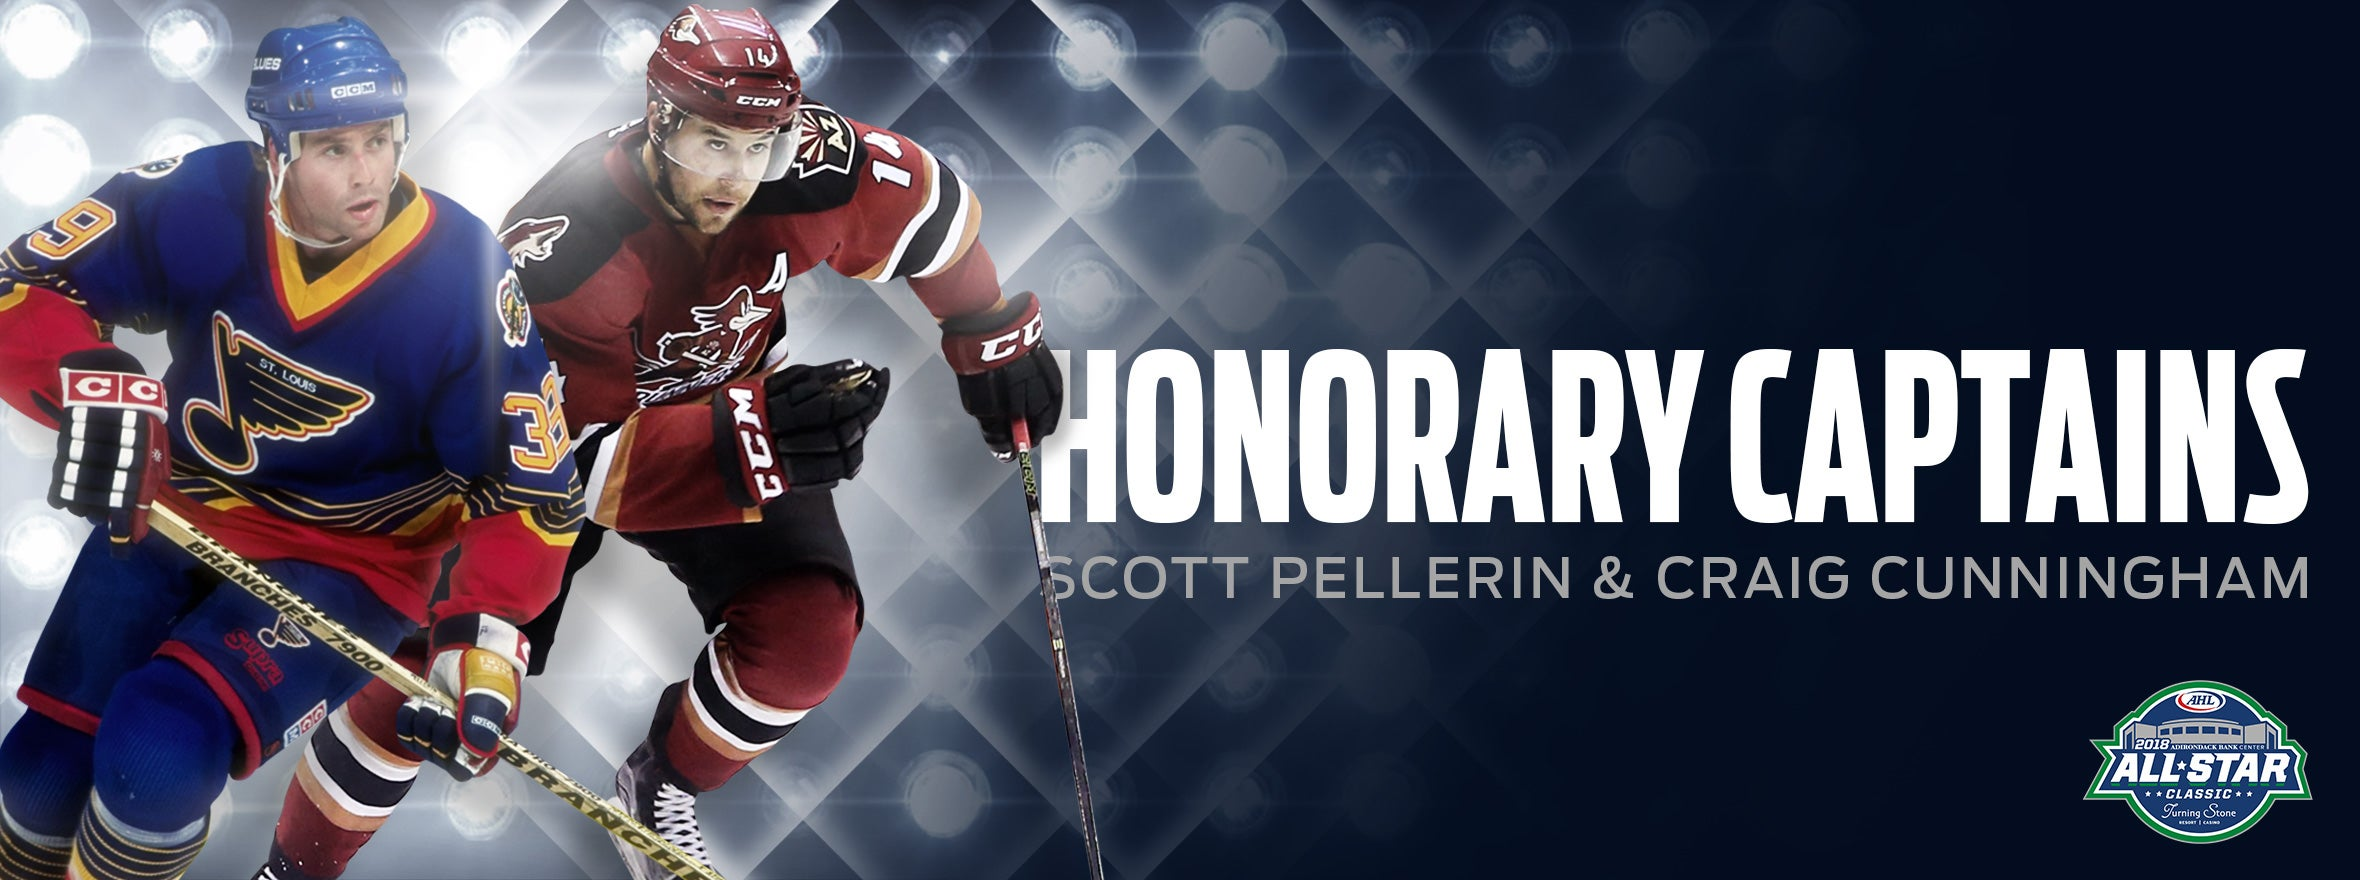 SCOTT PELLERIN, CRAIG CUNNINGHAMG NAMED HONORARY